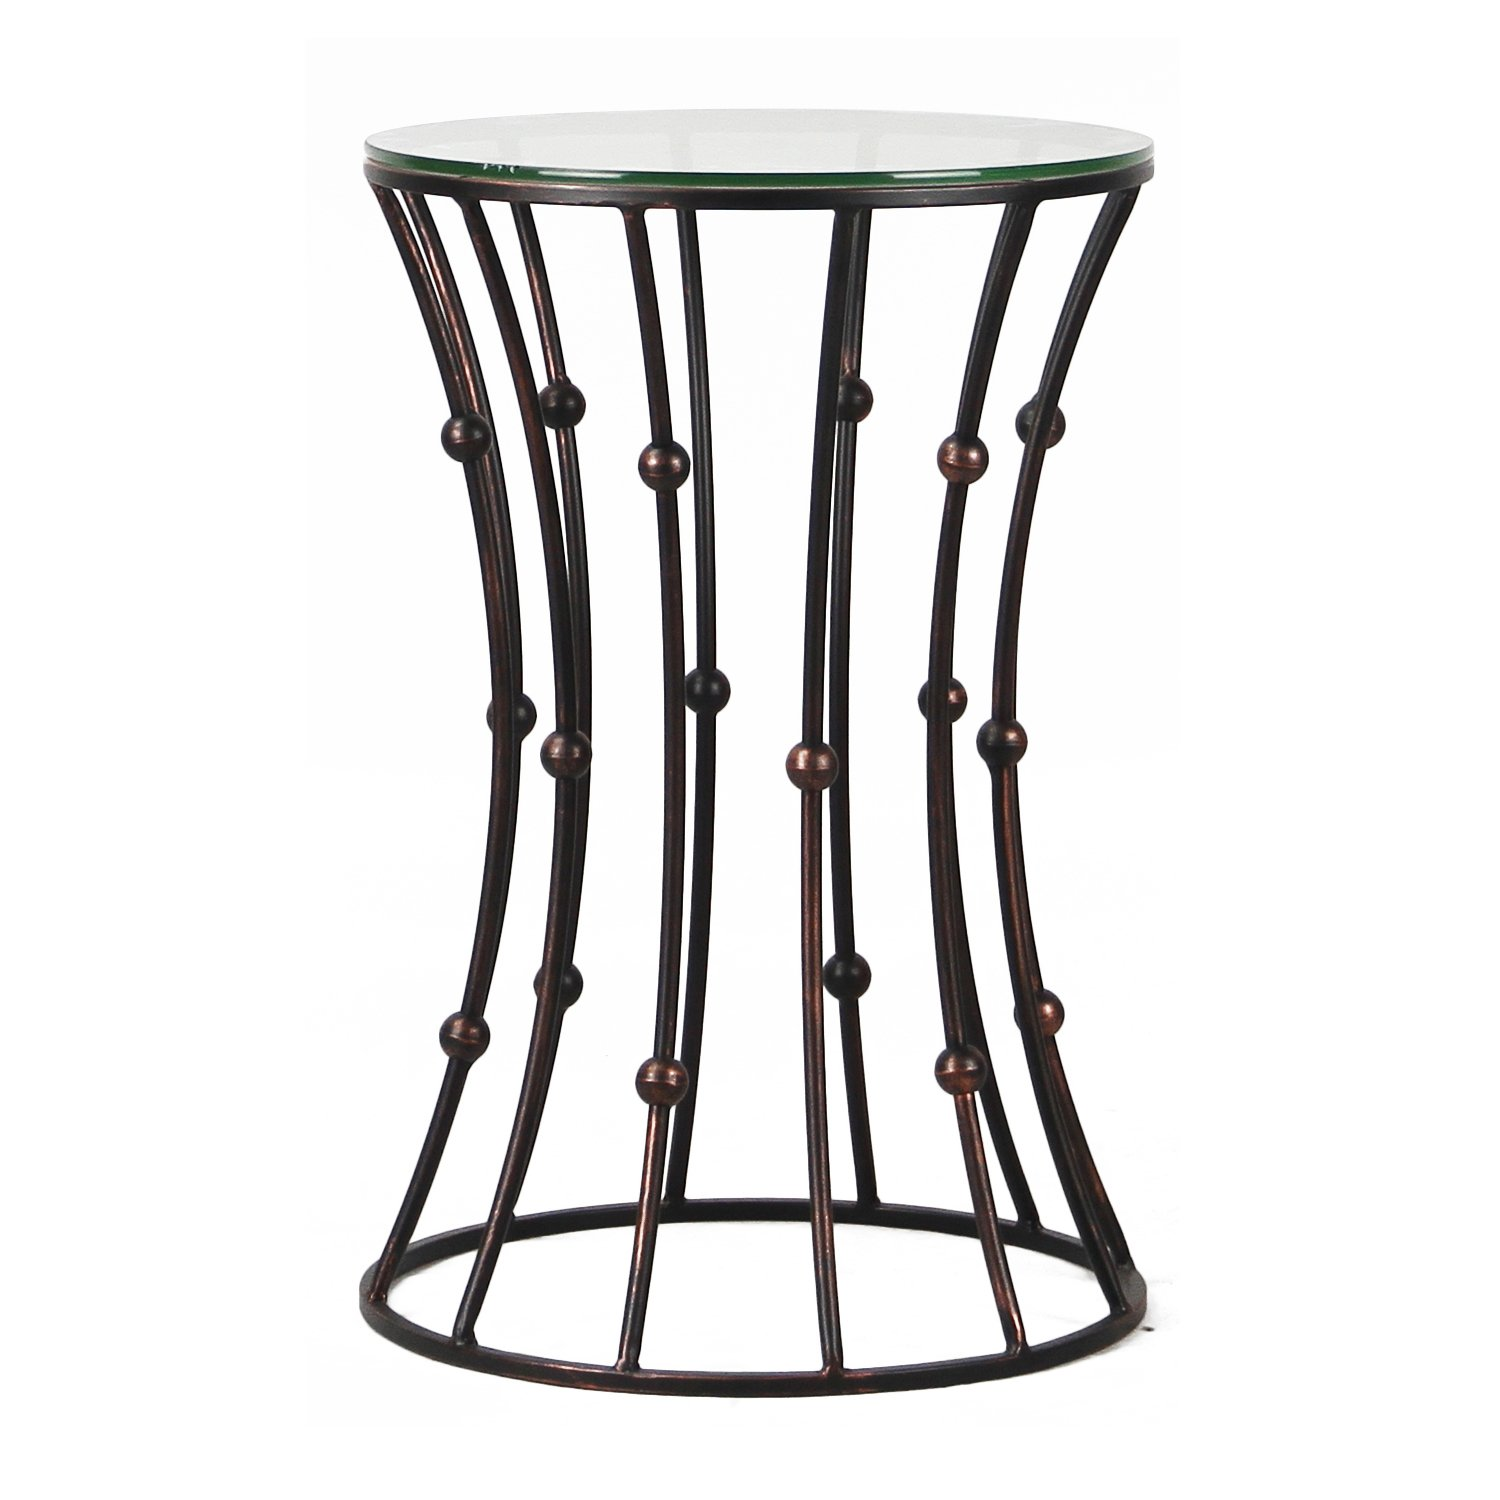 adeco new accent postmodernism drum shape metal coffee table shaped black small telephone ikea stackable outdoor tables bathroom towels grey wicker gold foyer nesting bedside